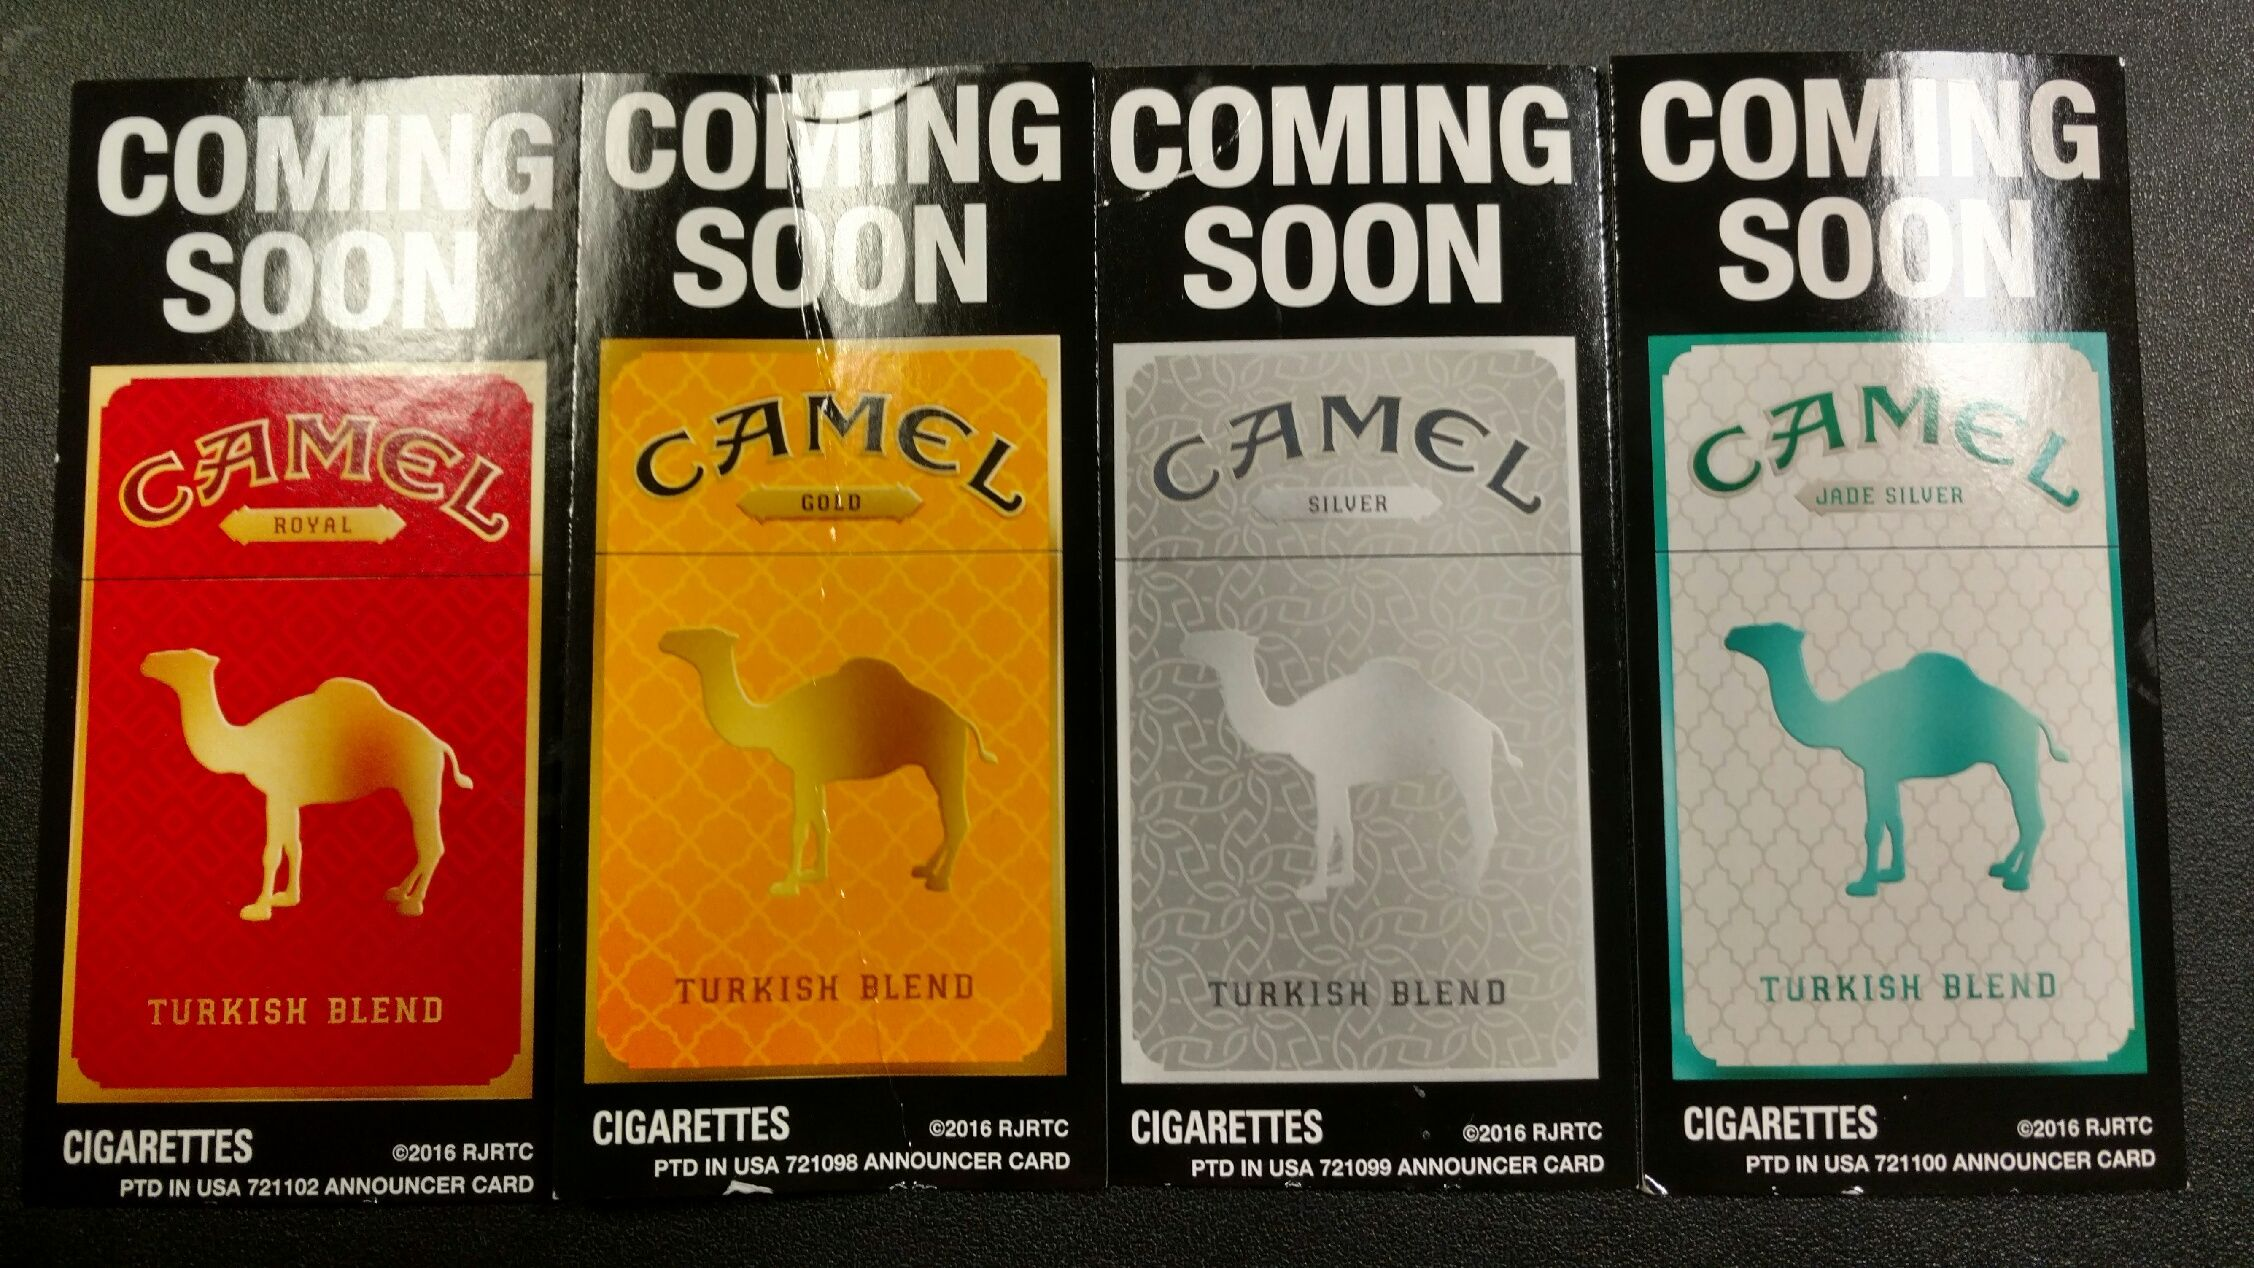 Pin on camel cigarettes